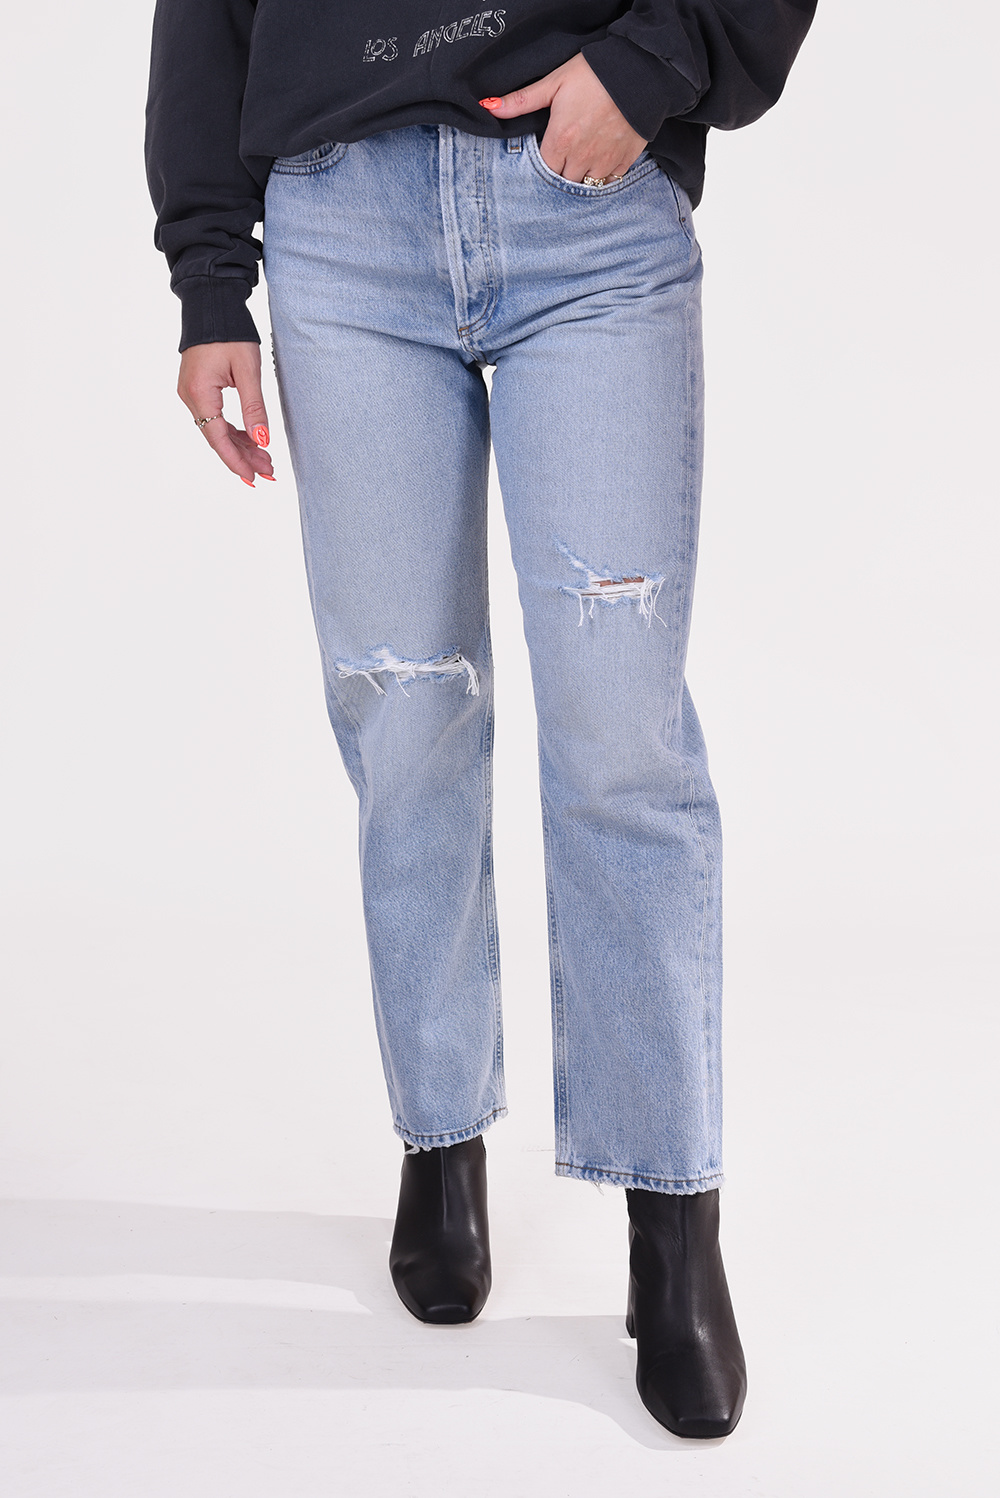 Agolde jeans 90´s A069-1141 blauw